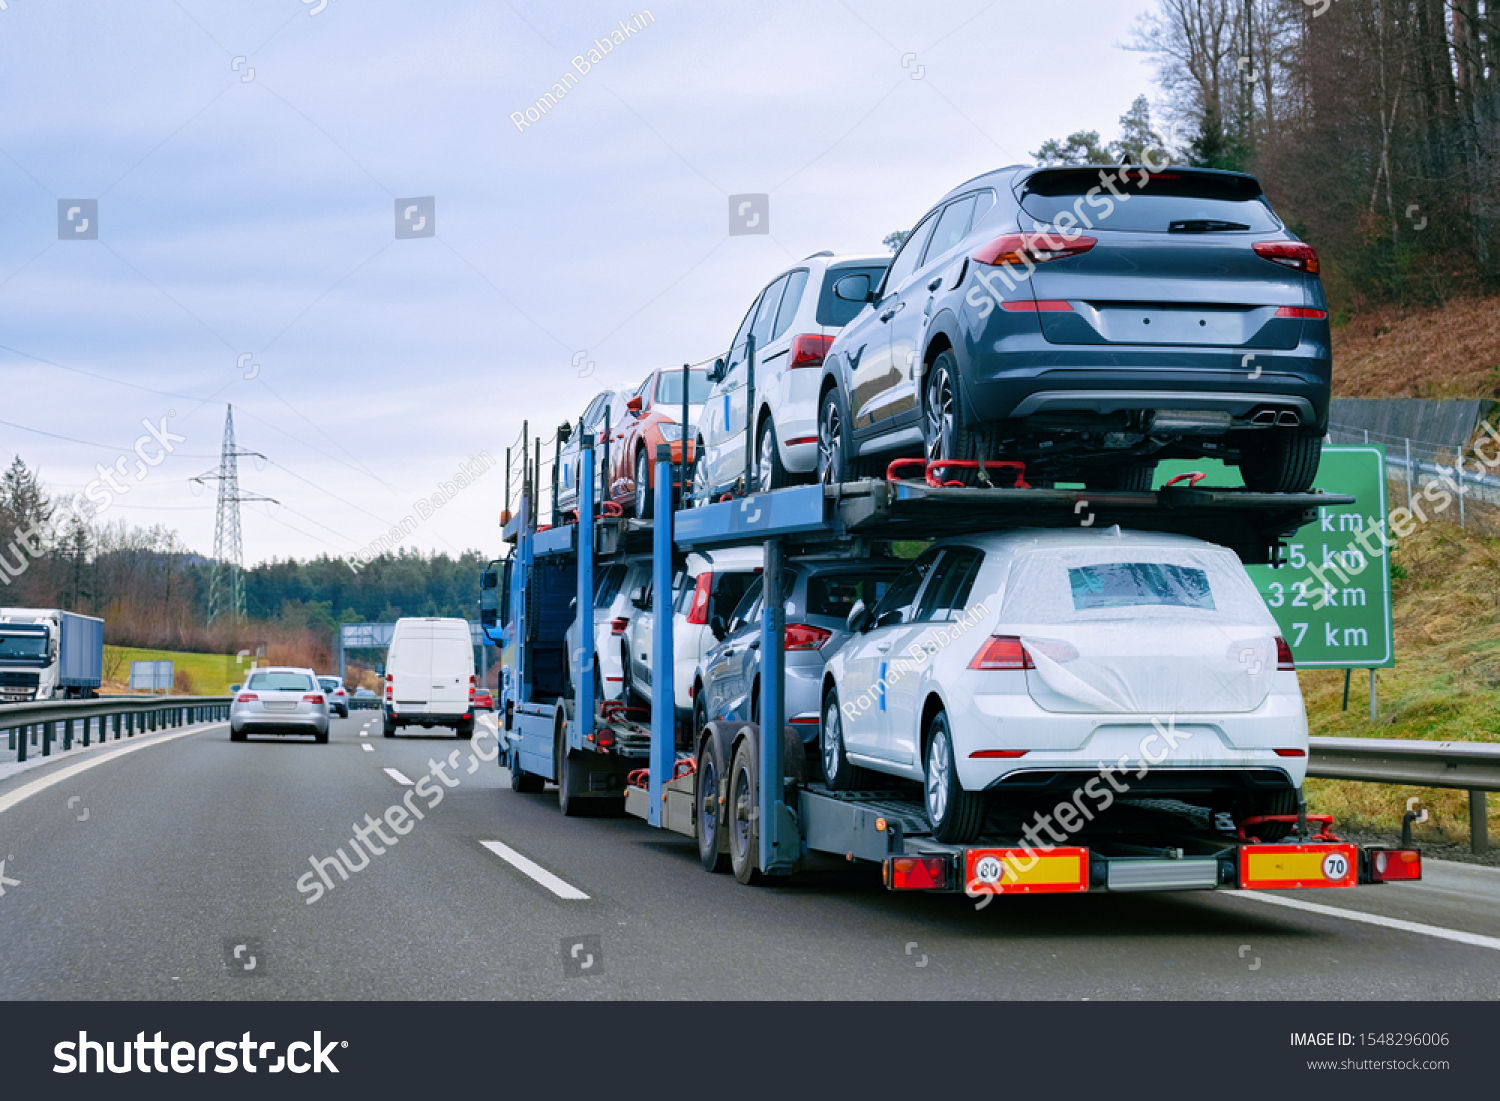 Car carrier transporter truck on road. Auto vehicles hauler on driveway. European transport logistics at haulage work transportation. Heavy haul trailer with driver on highway. #1548296006